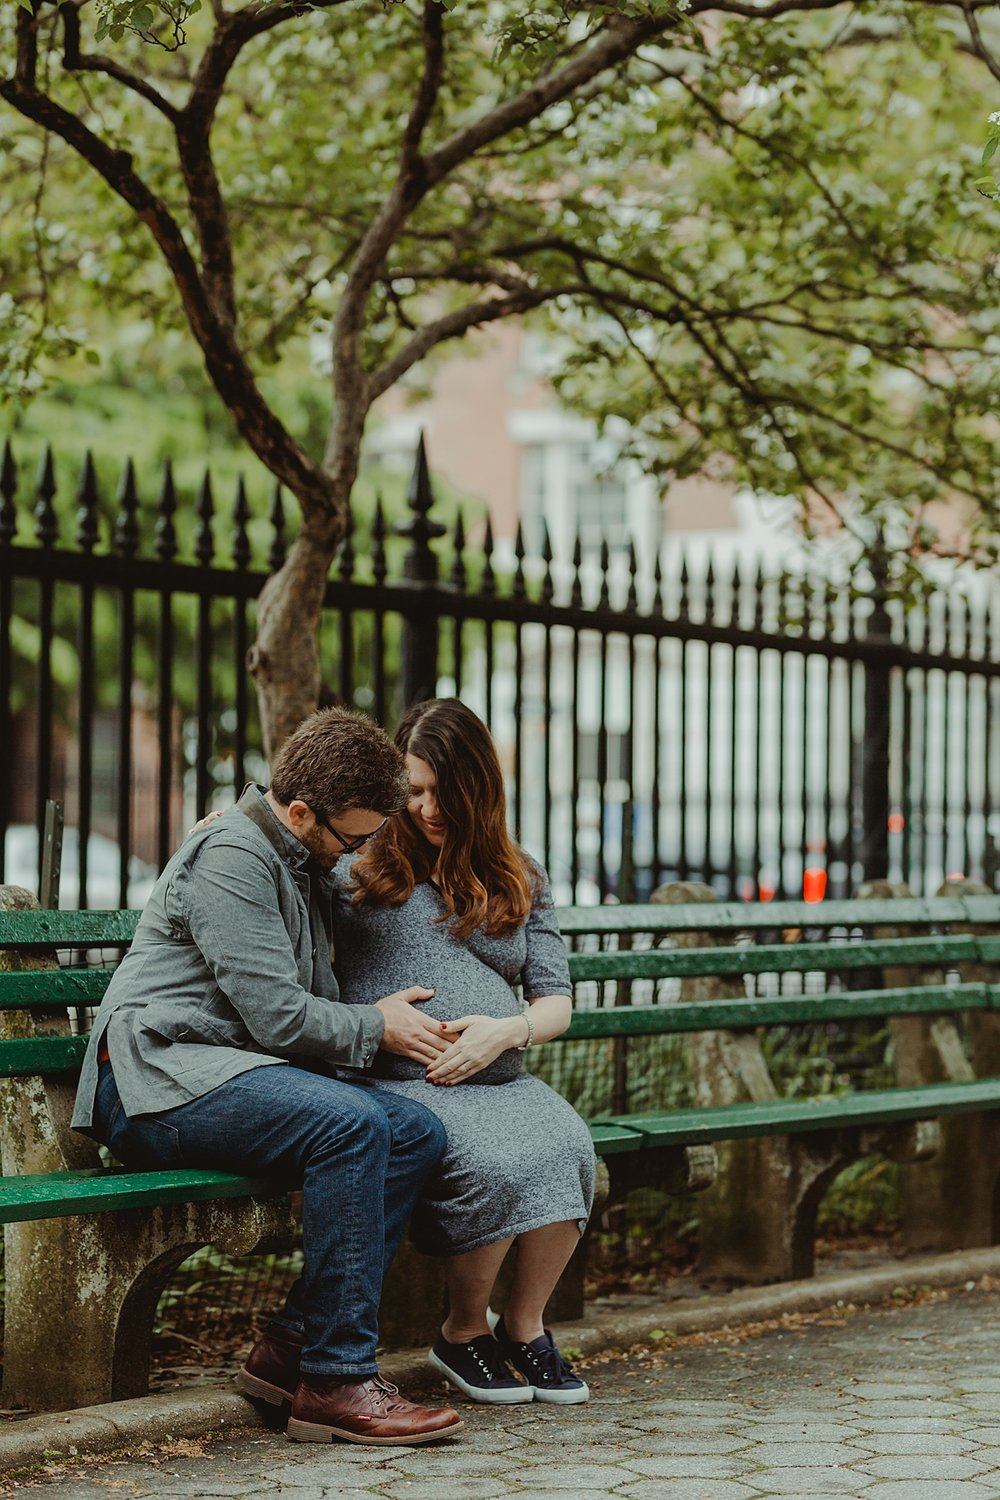 photo of expecting mom and dad sitting on park bench with dad touching mom's belly during maternity photo session. photo by nyc family and newborn photographer krystil mcdowall